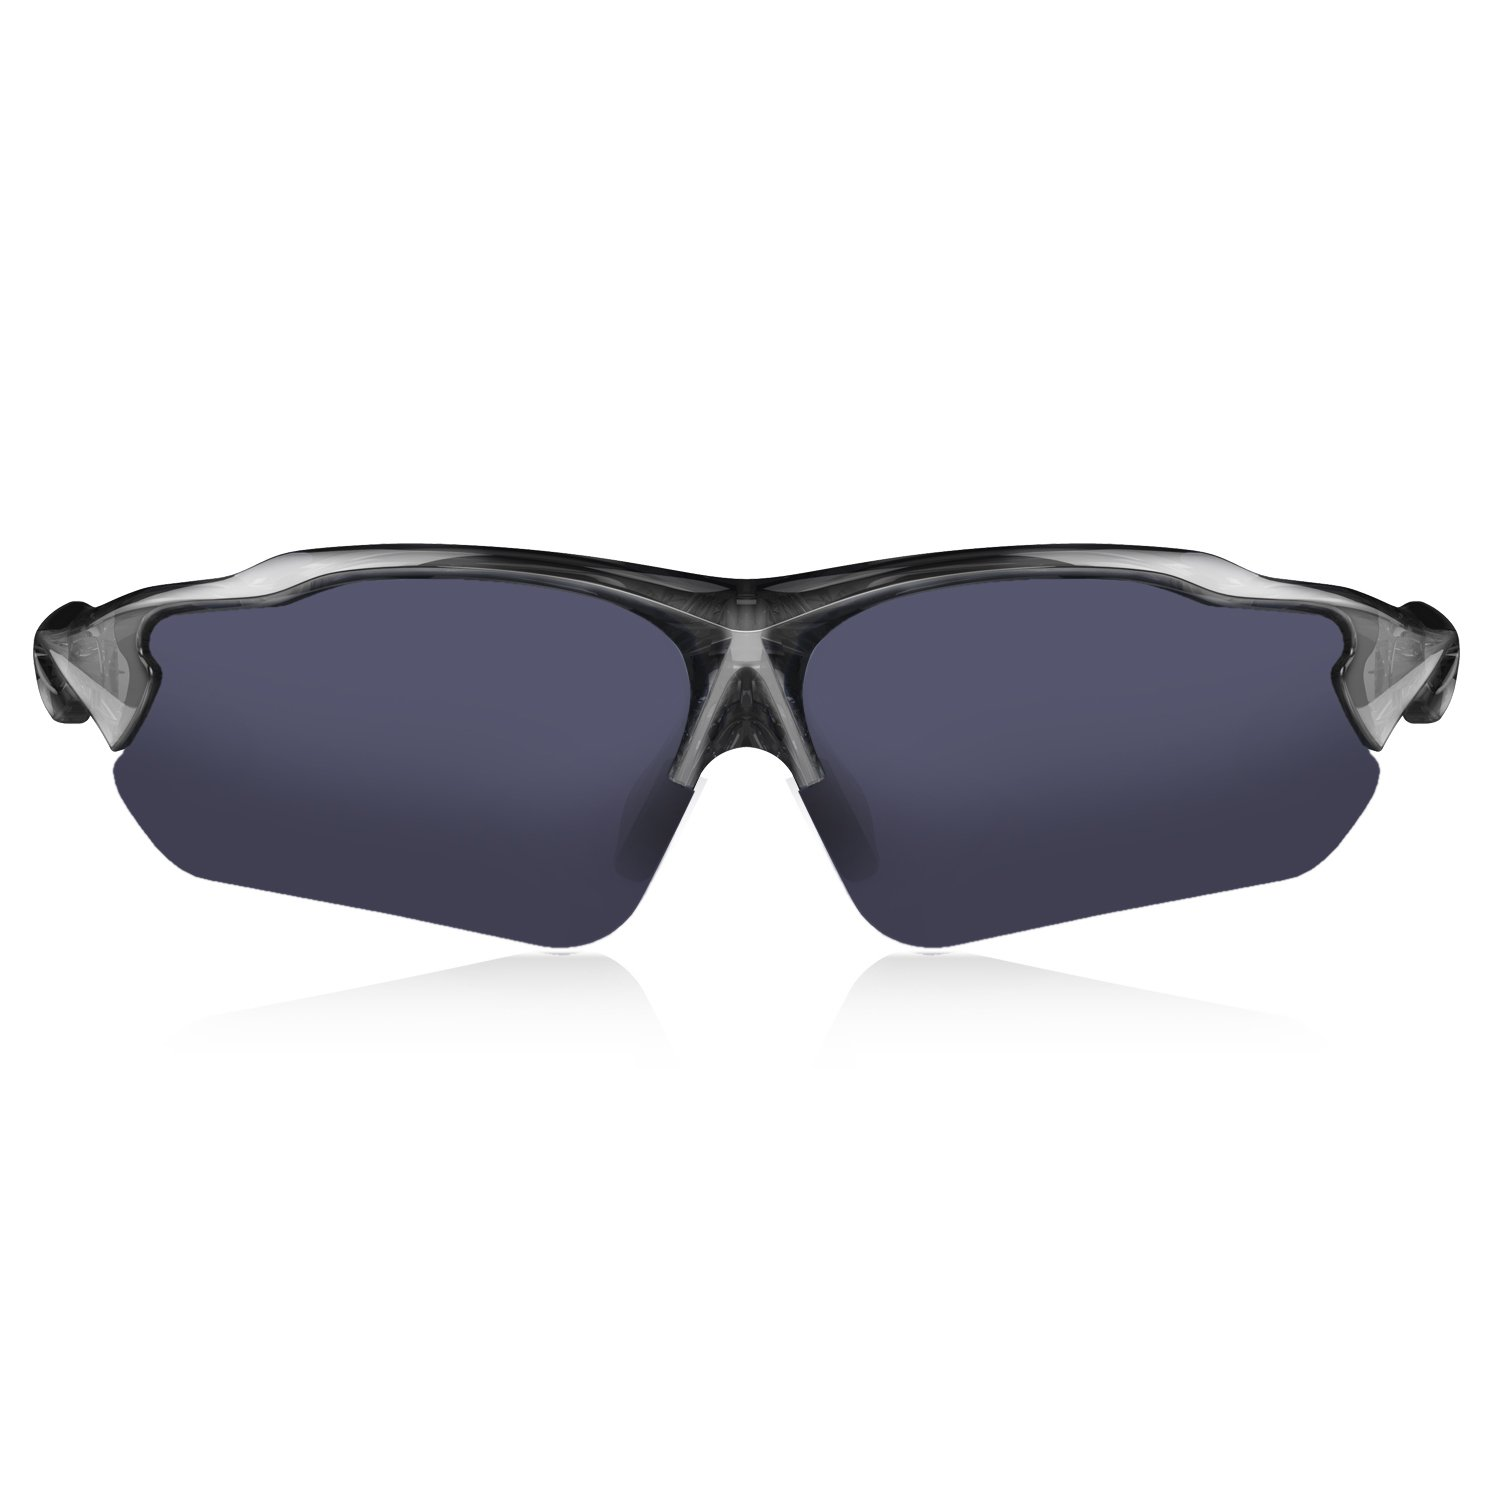 Hulislem Sports Sunglasses Polarized For Men or Women by Hulislem